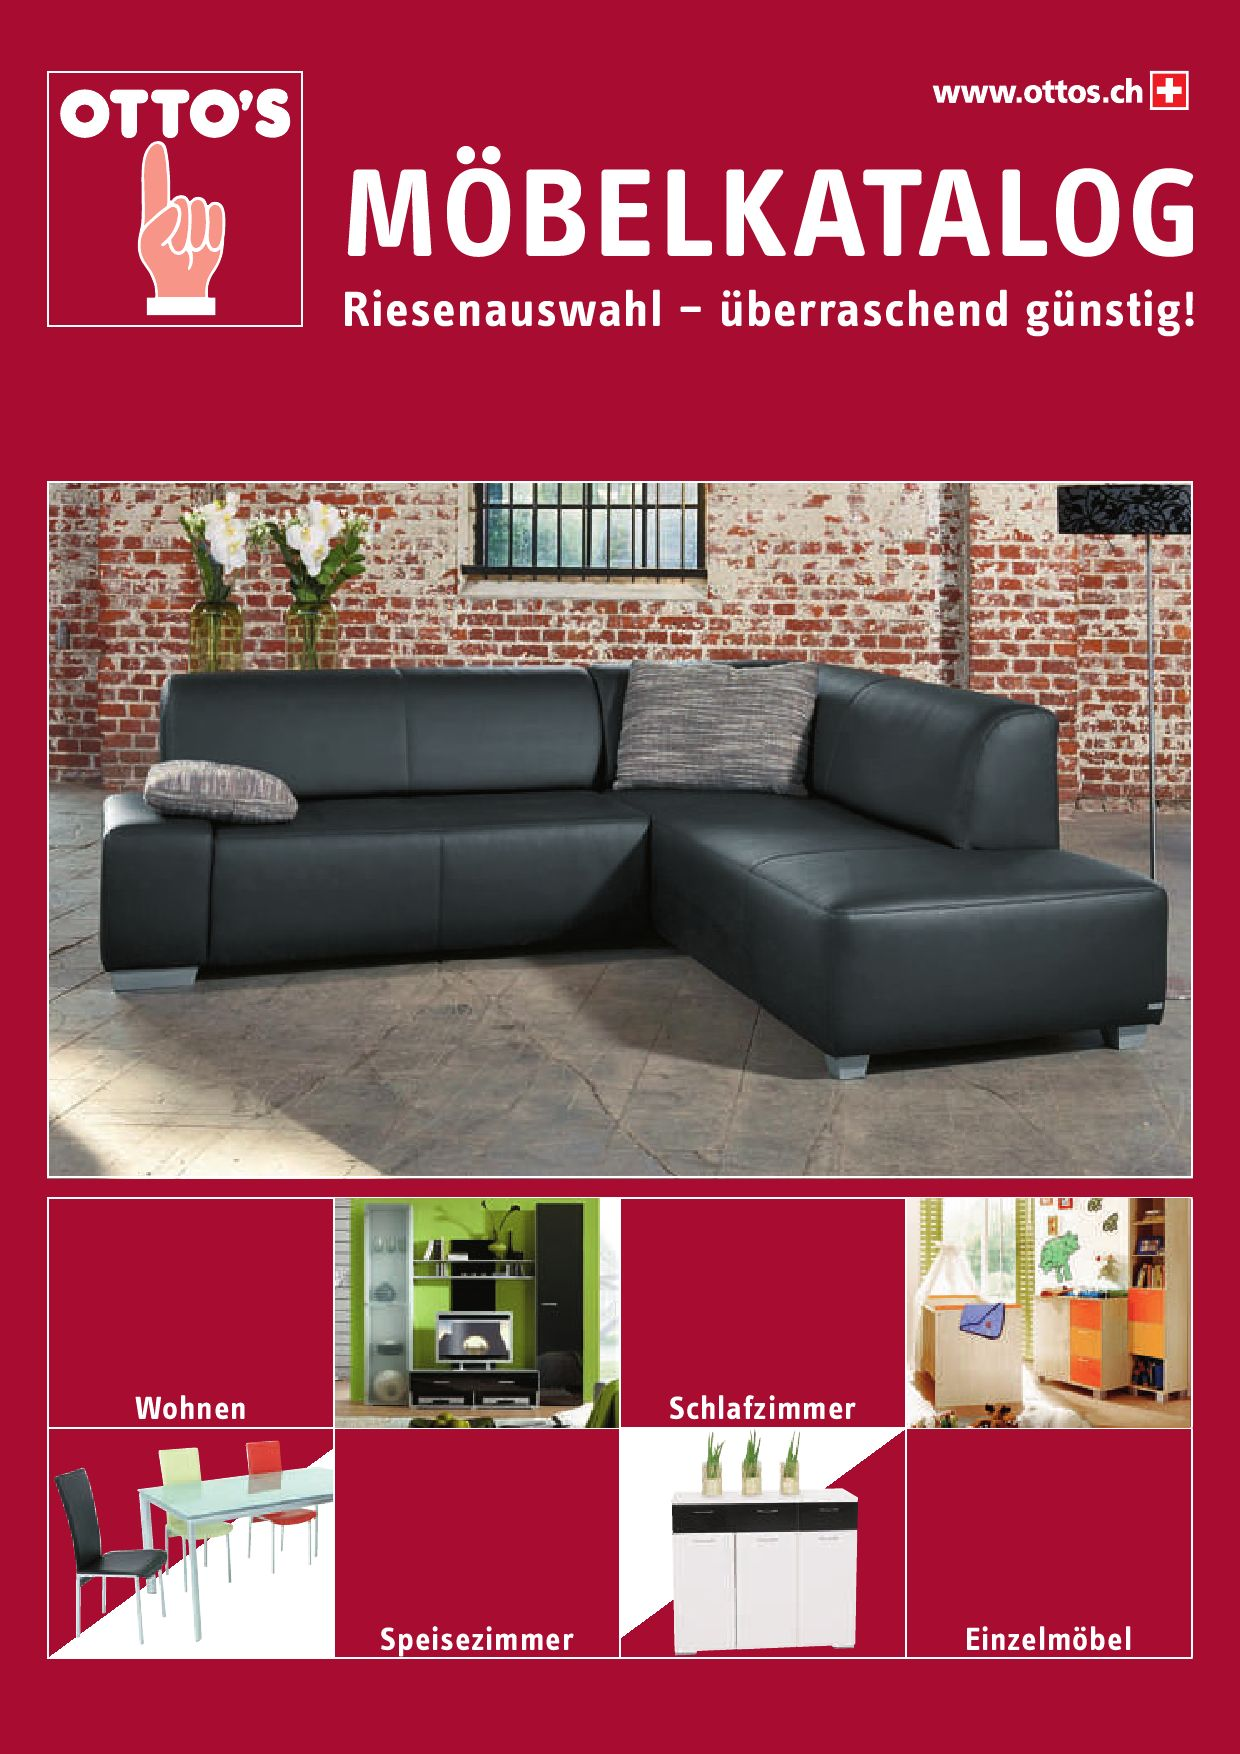 Klappbett Ottos Otto S Möbelkatalog 09 By Ottos Ag Switzerland Issuu